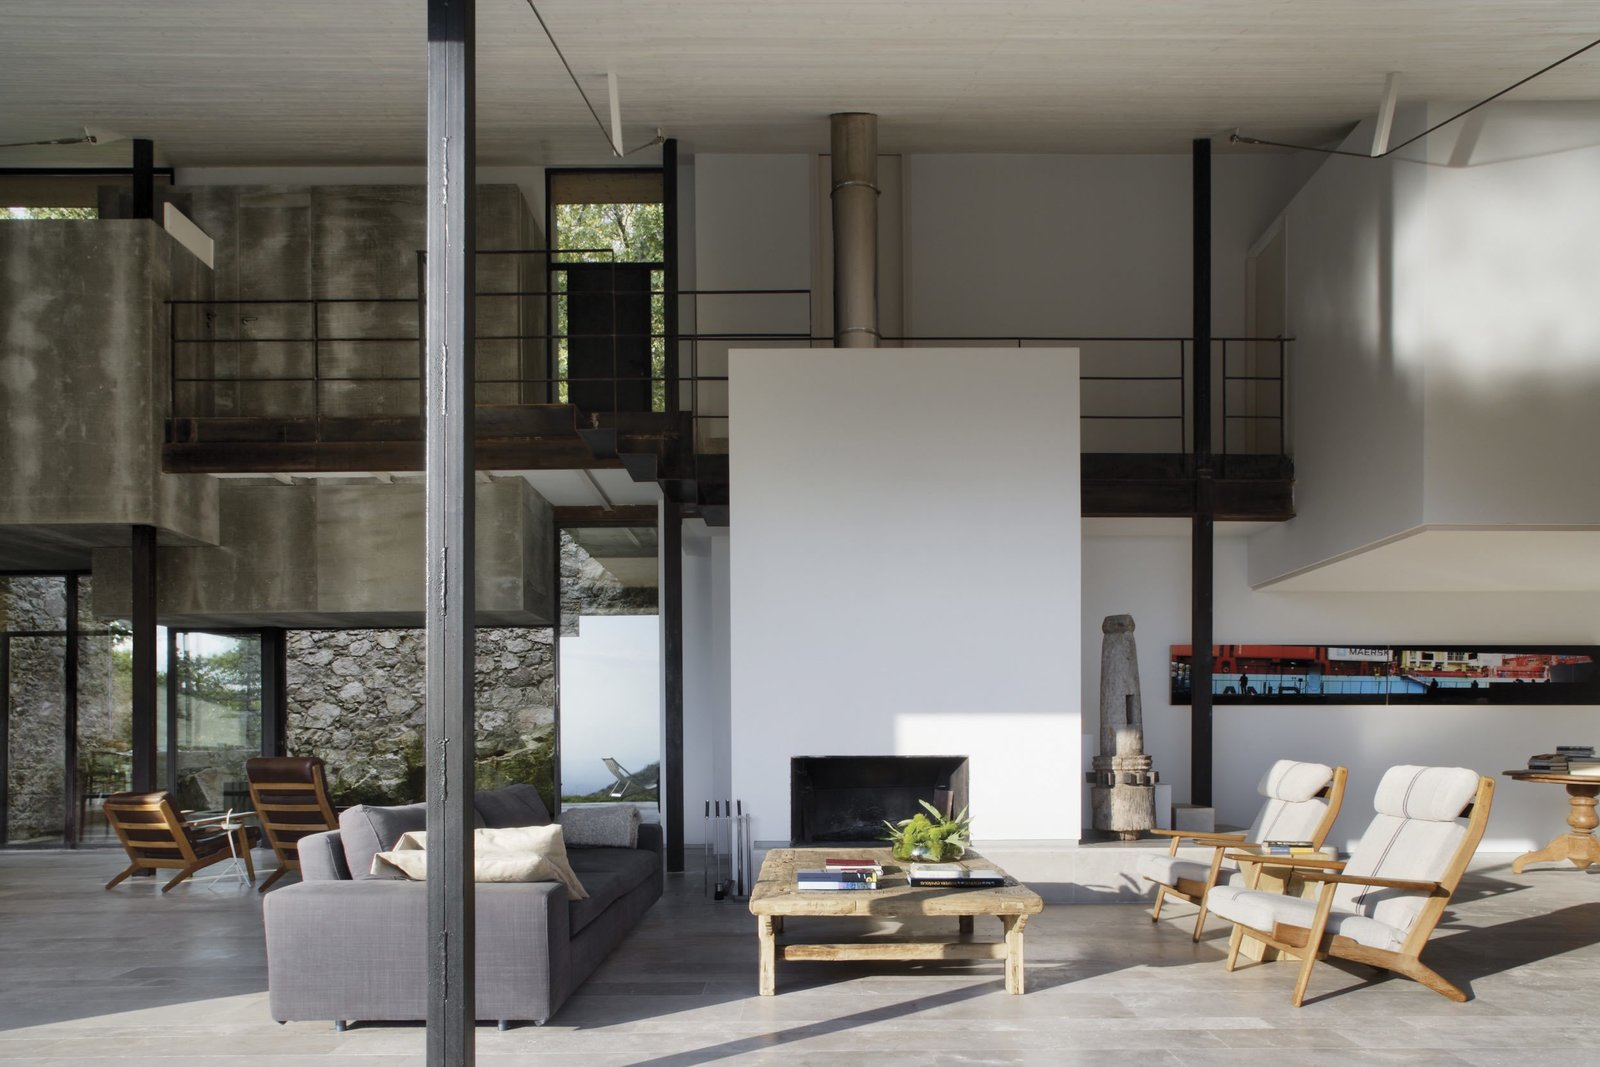 Living Room, Chair, Sofa, and Standard Layout Fireplace  Photo 3 of 14 in An Abandoned Stable in Spain Is Transformed Into a Sustainable Vacation Home For Rent